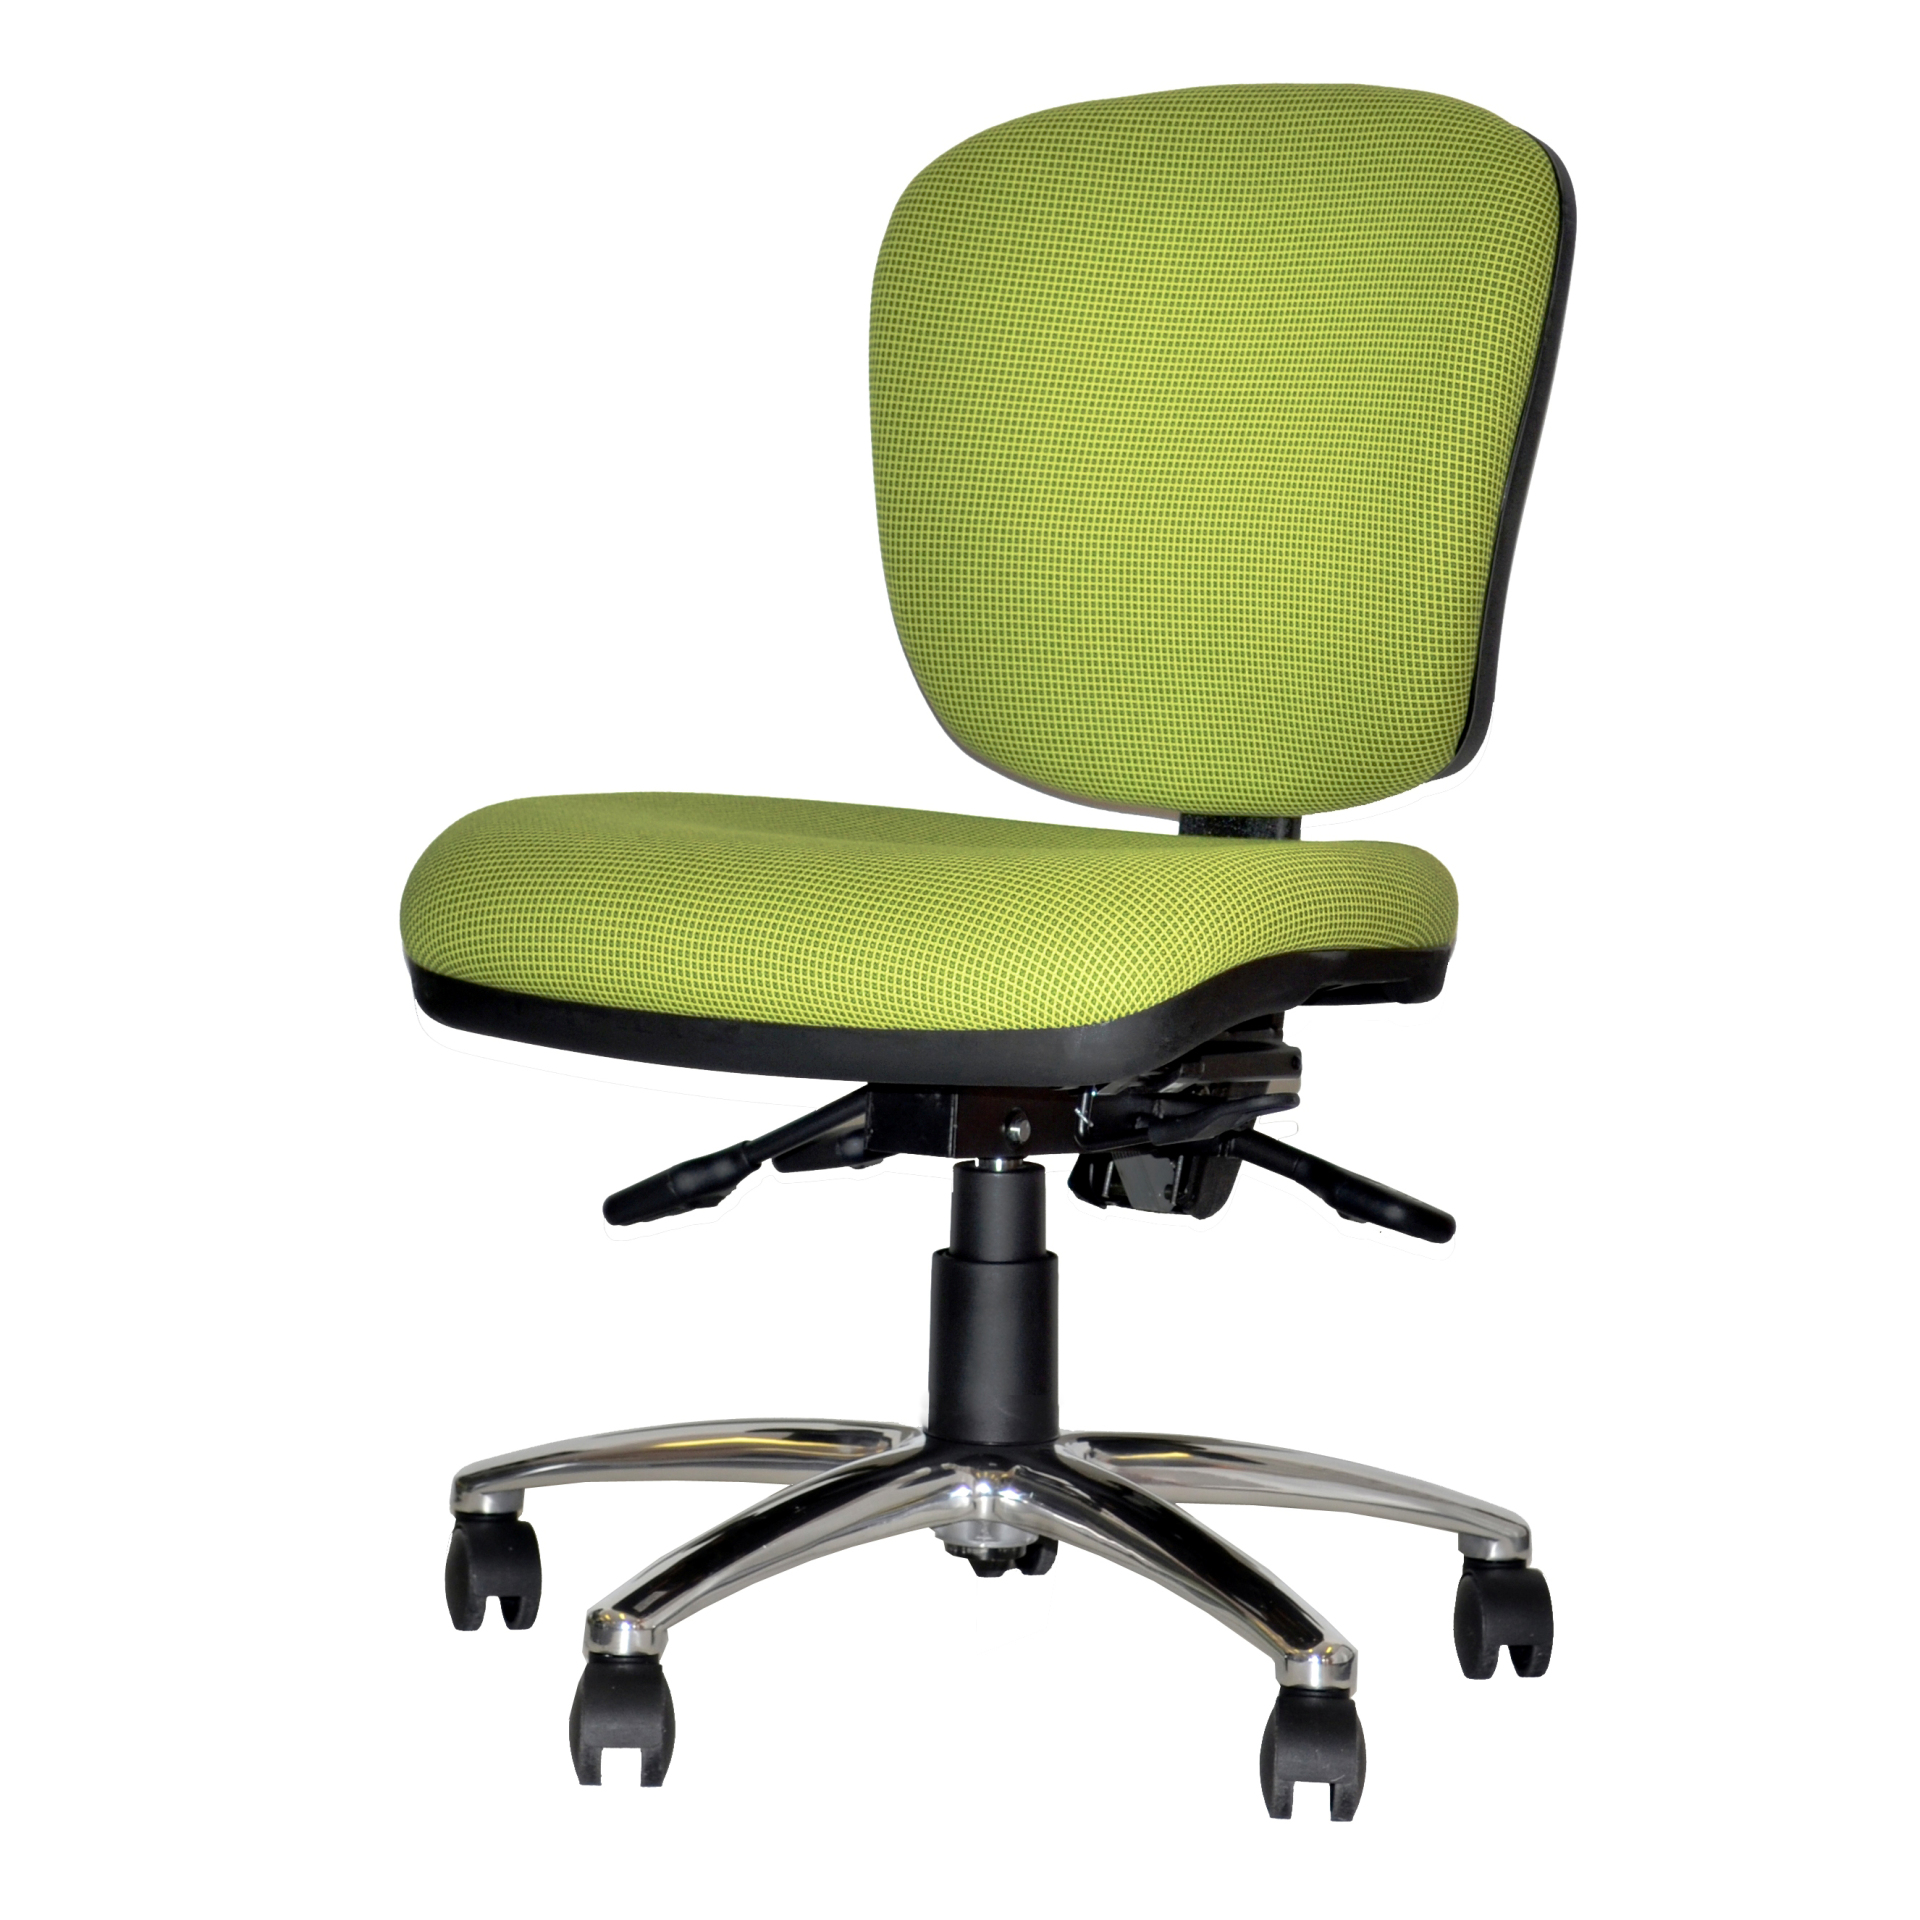 Direct Ergonomics | Sydney Office Furniture | Ergonomic Furniture | Ergonomic Seating | Executive and Task Seating | Ergonomic Chair | Ezone Plus